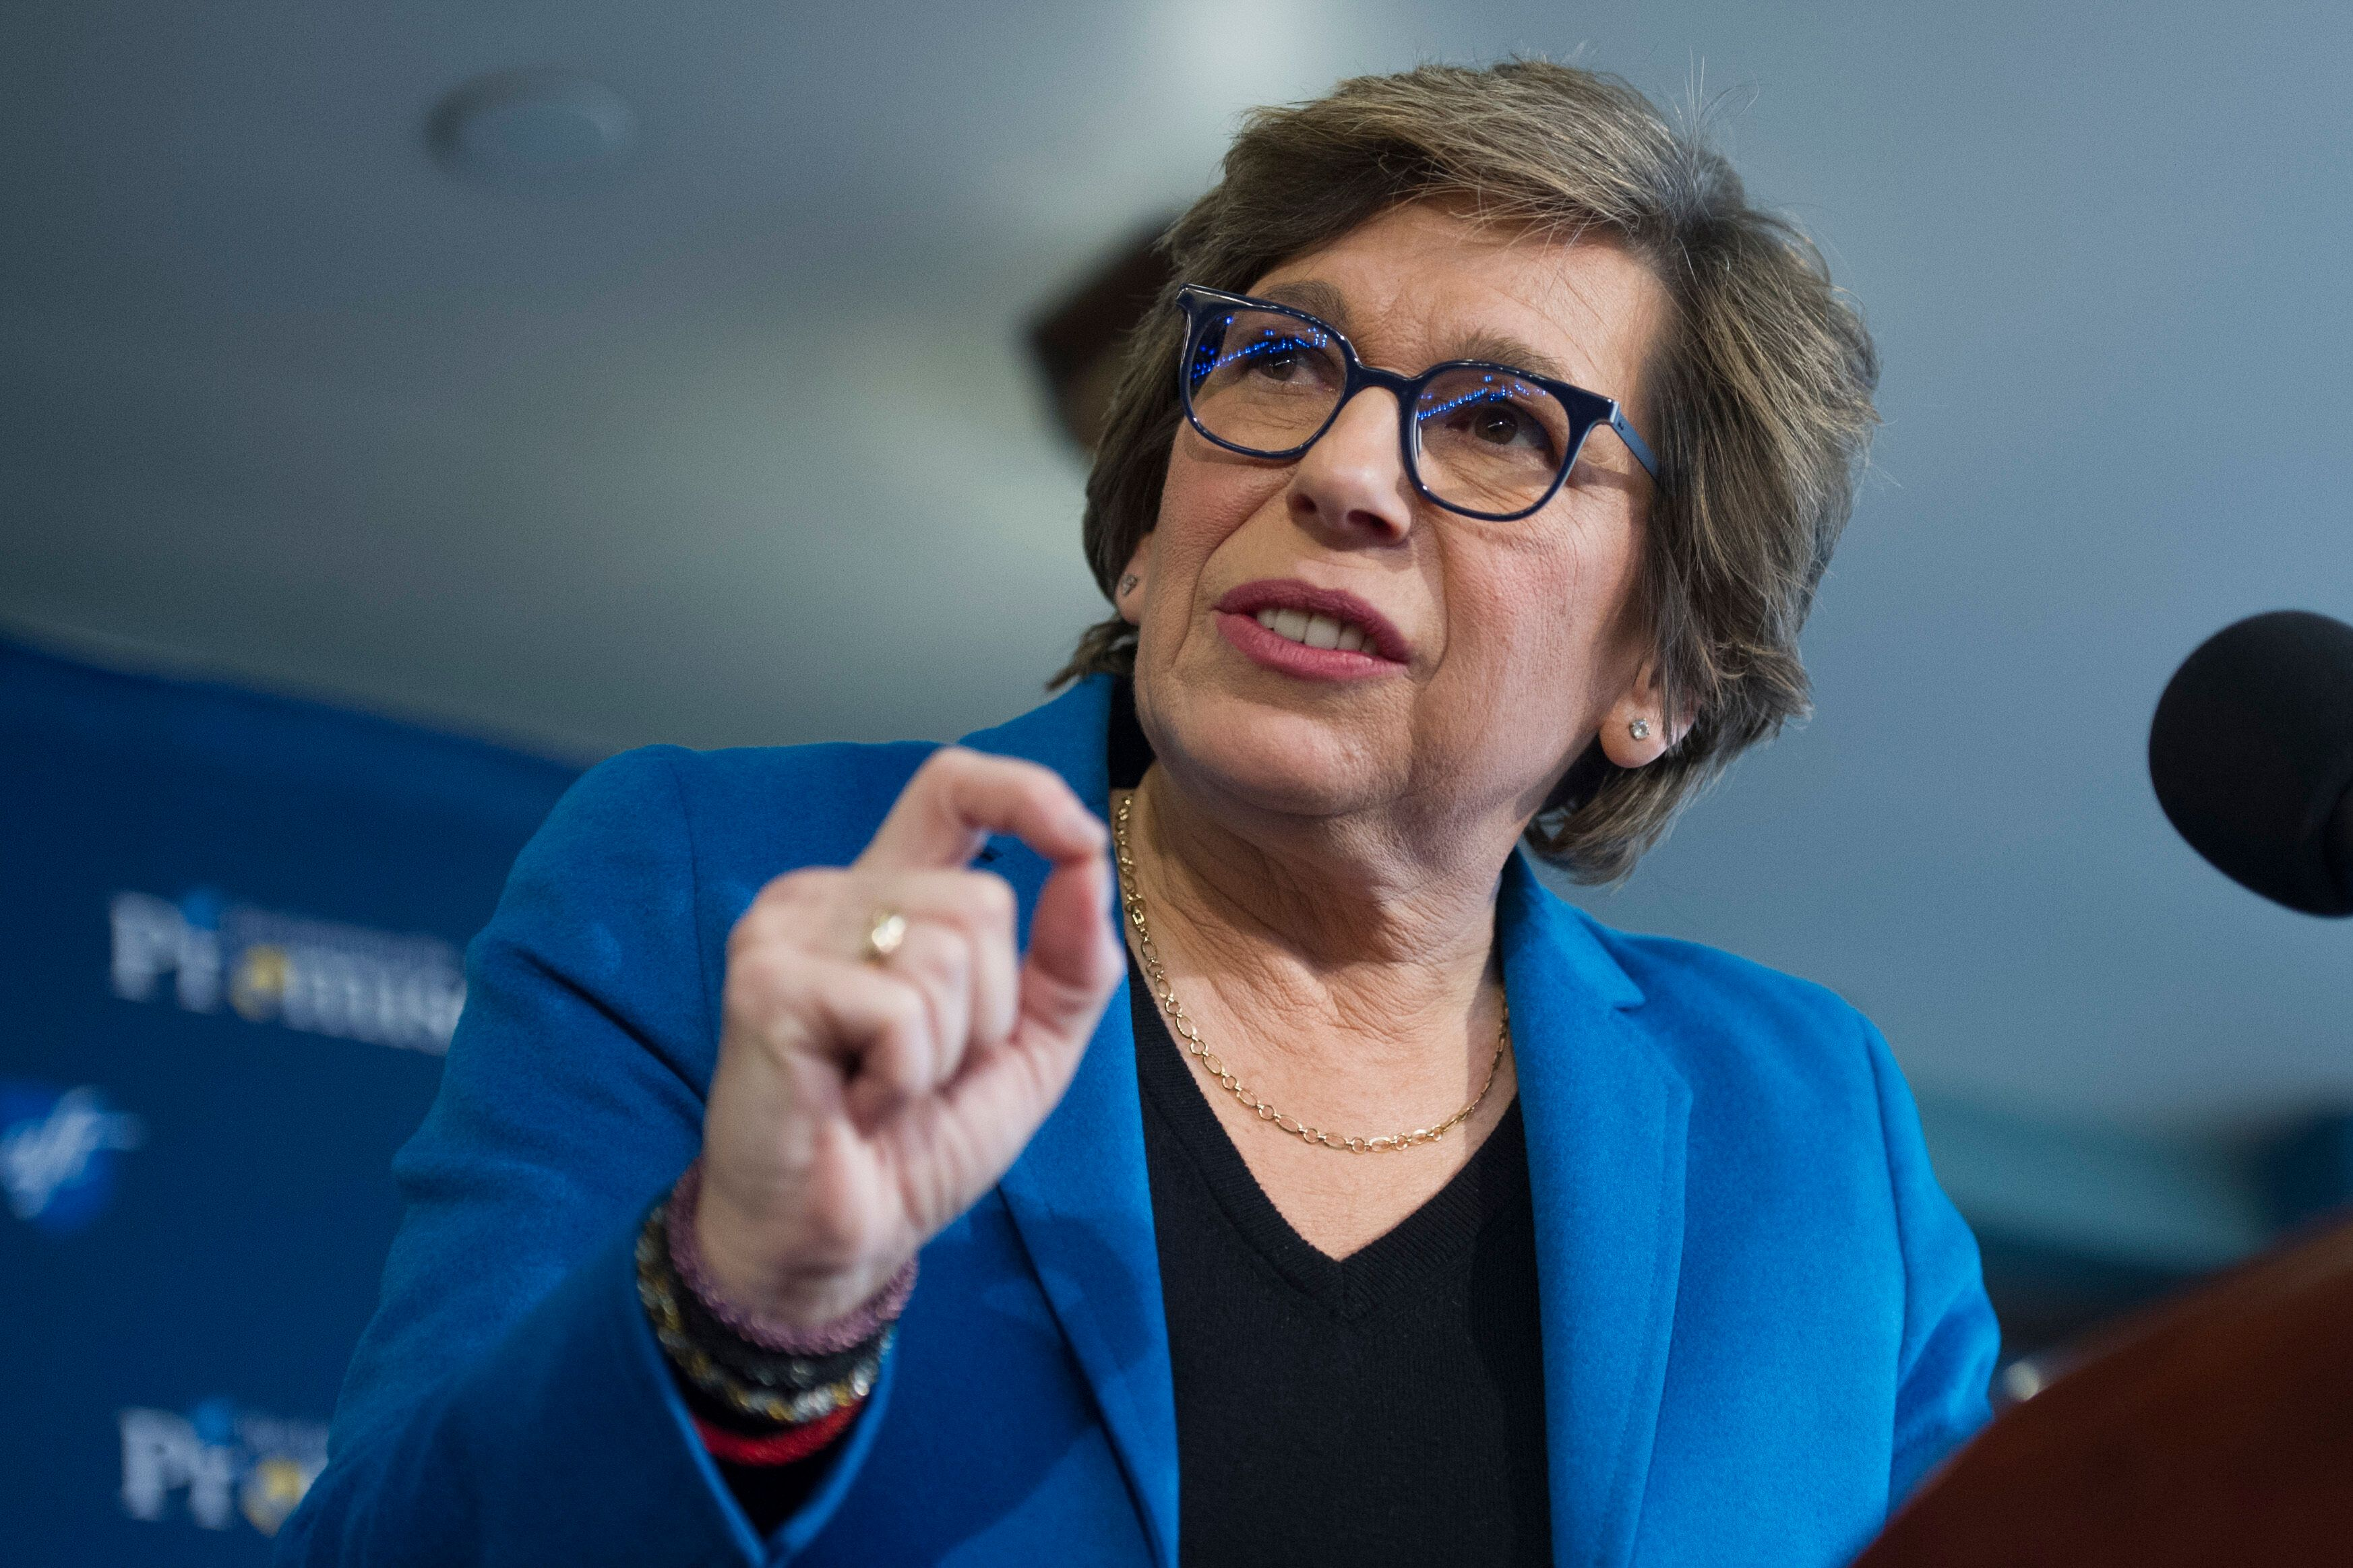 American Federation of Teachers President Randi Weingarten speaks about education, Monday, Jan. 9, 2017, at the National Press Club in Washington. Weingarten addressed students needs to succeed and the pitfalls of an anti-public education agenda. (AP Photo/Cliff Owen)